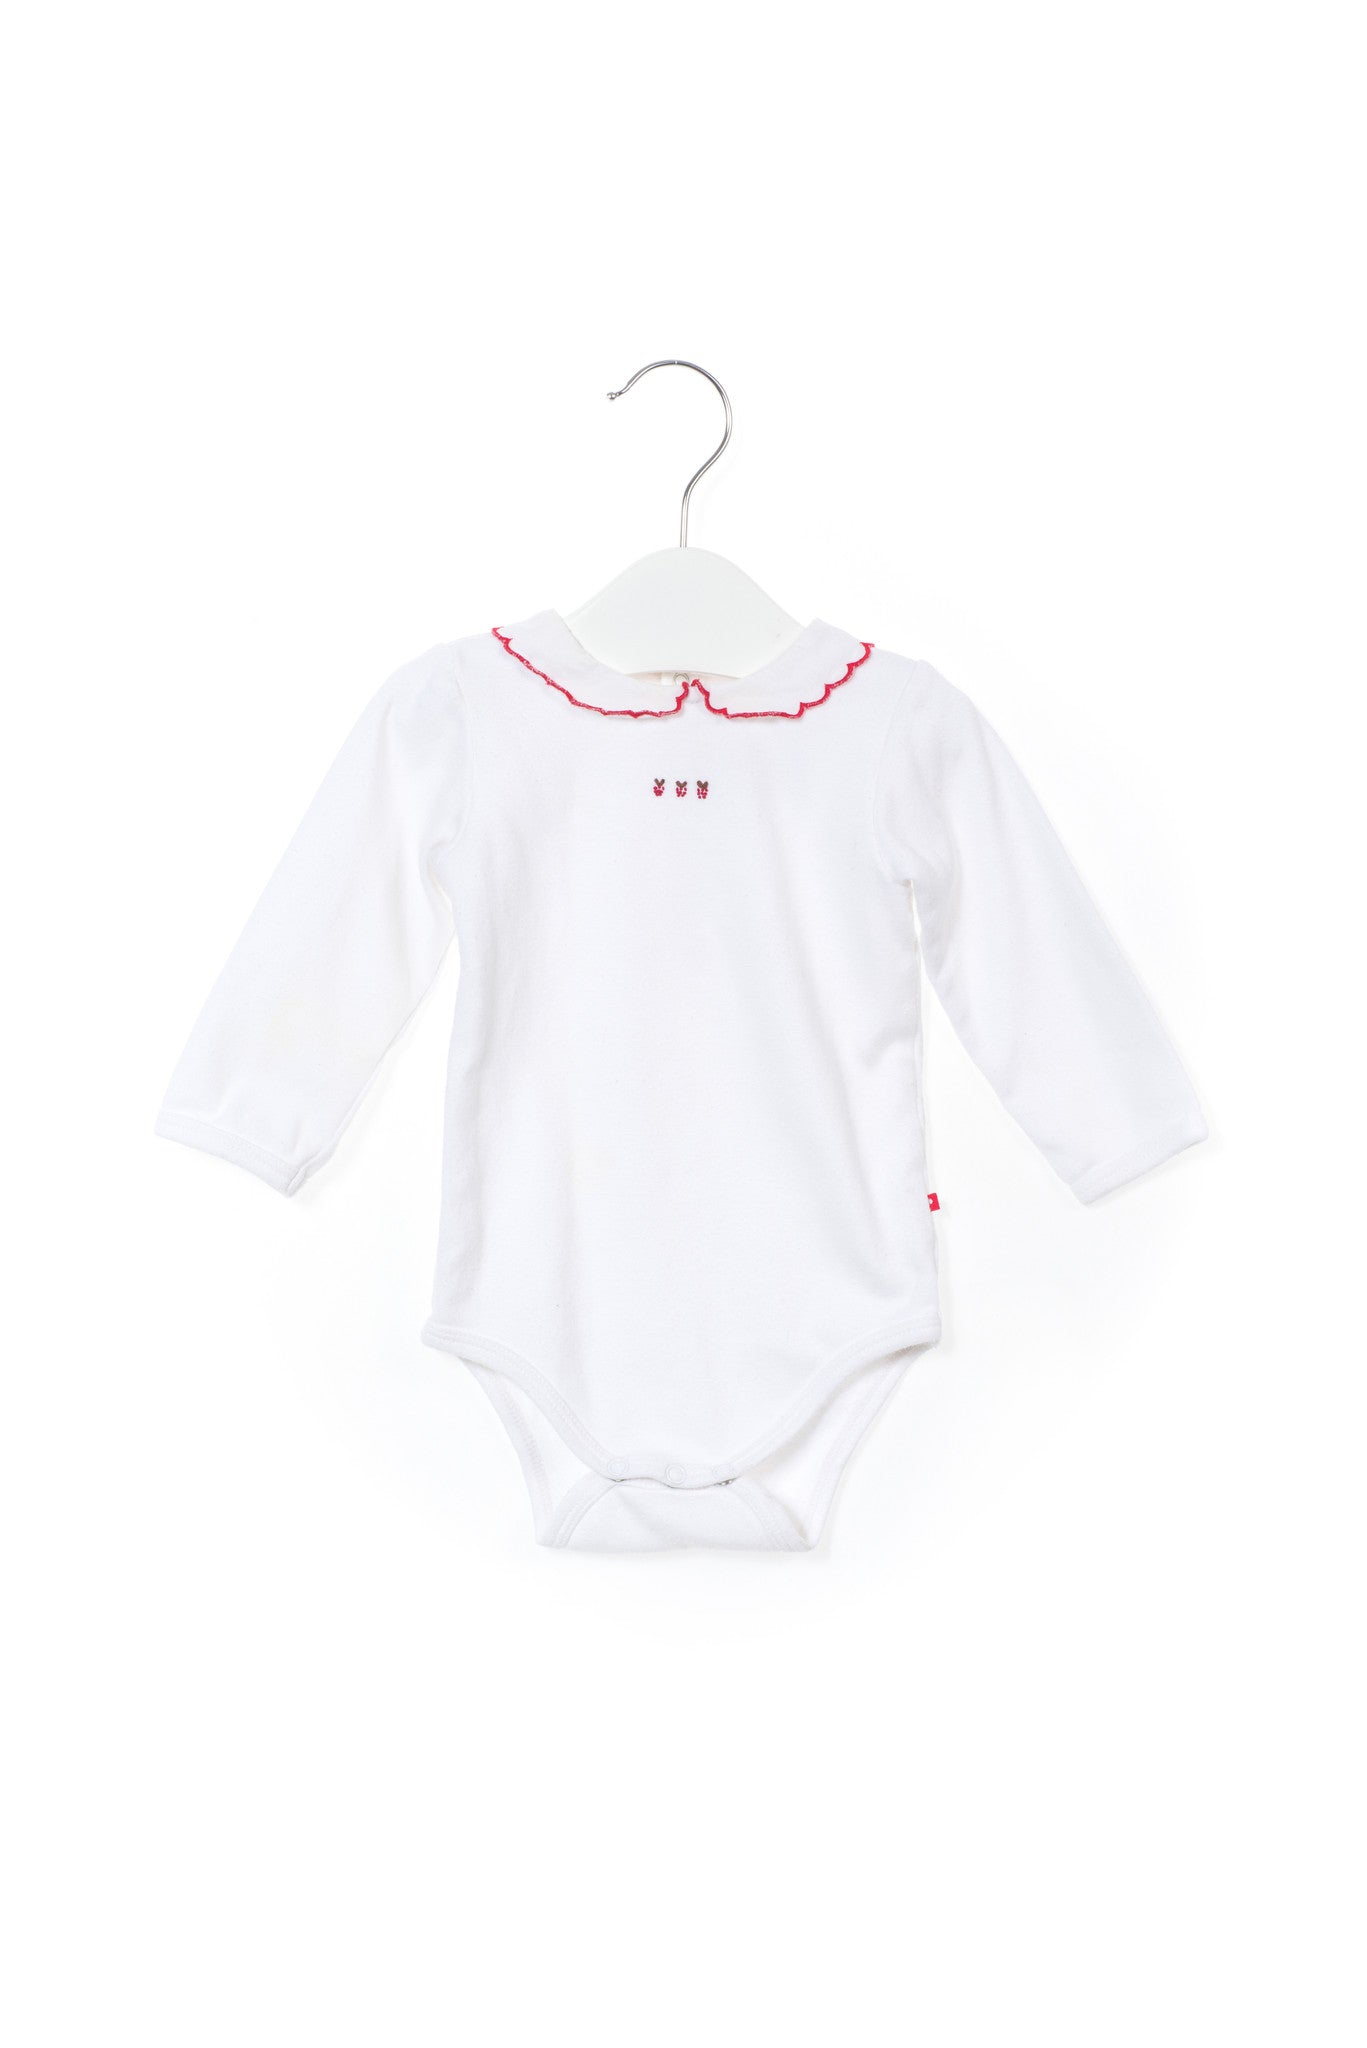 10001031 Jacadi Baby~Bodysuit 3-6M at Retykle